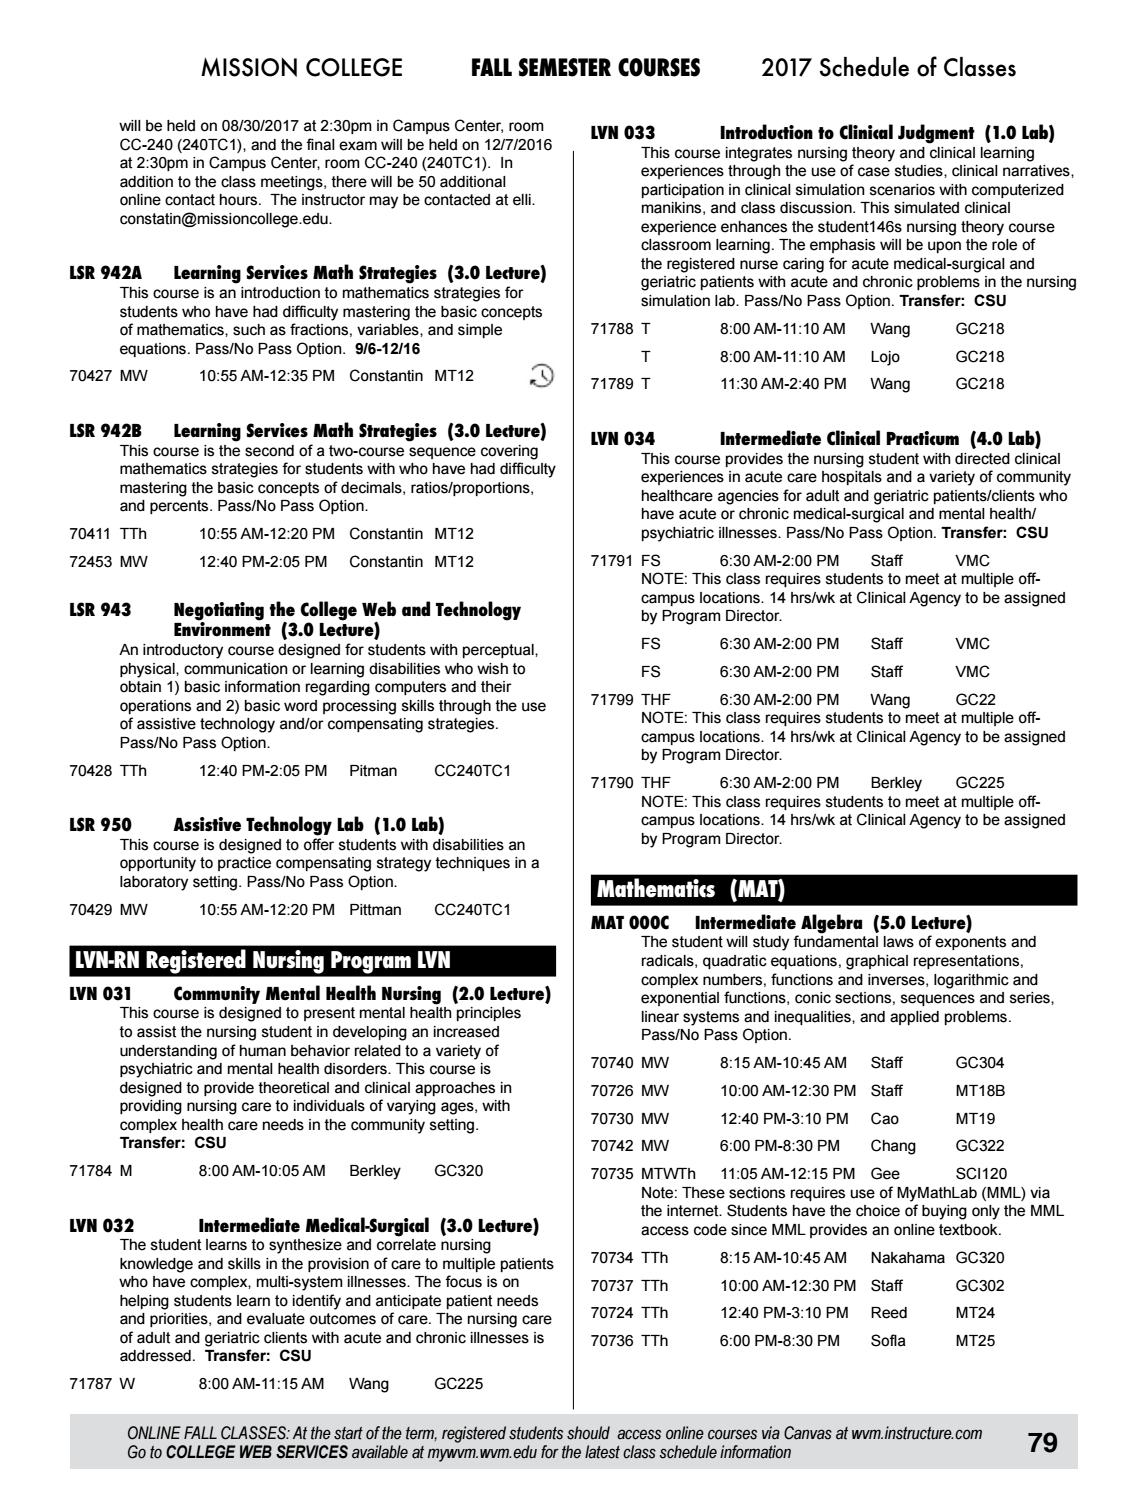 2017 Mission College Summer/Fall Schedule by Mission College - issuu